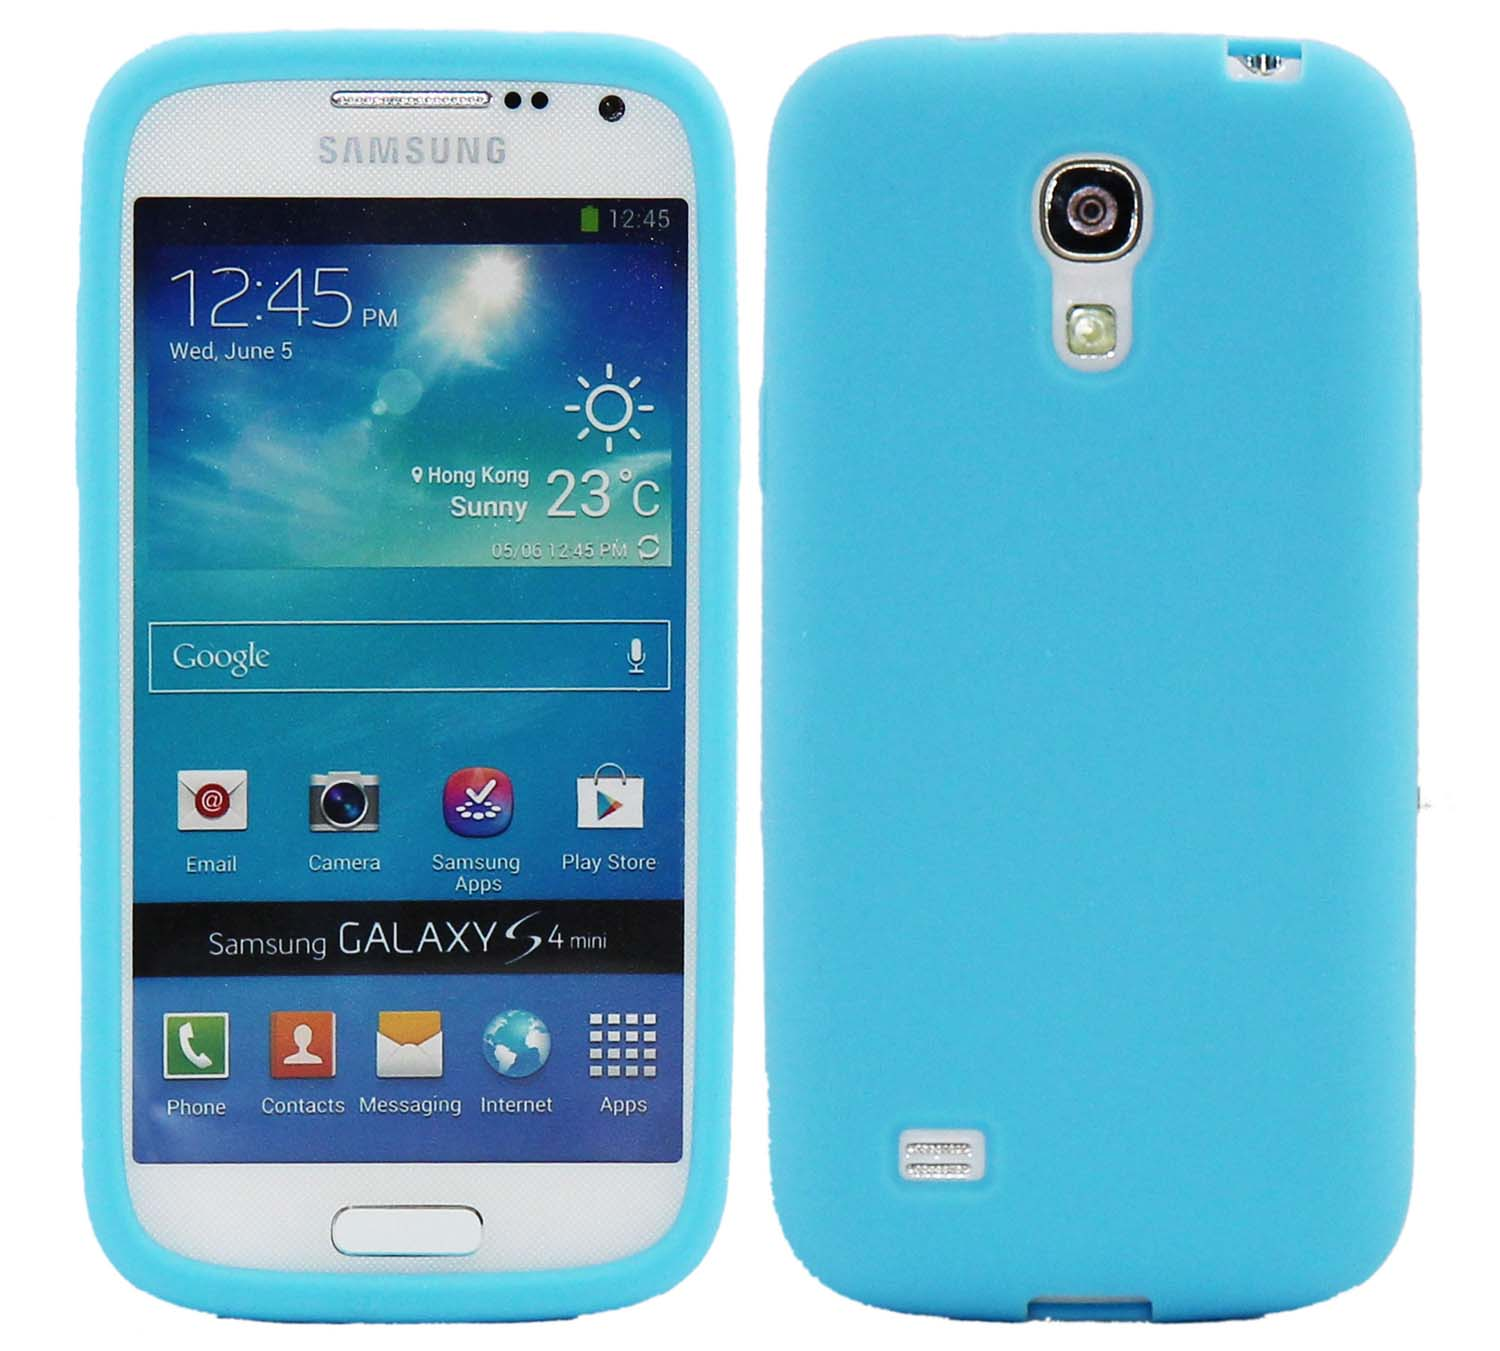 Coque housse tui en silicone tpu polycarbonate pour for Housse samsung galaxy s4 mini